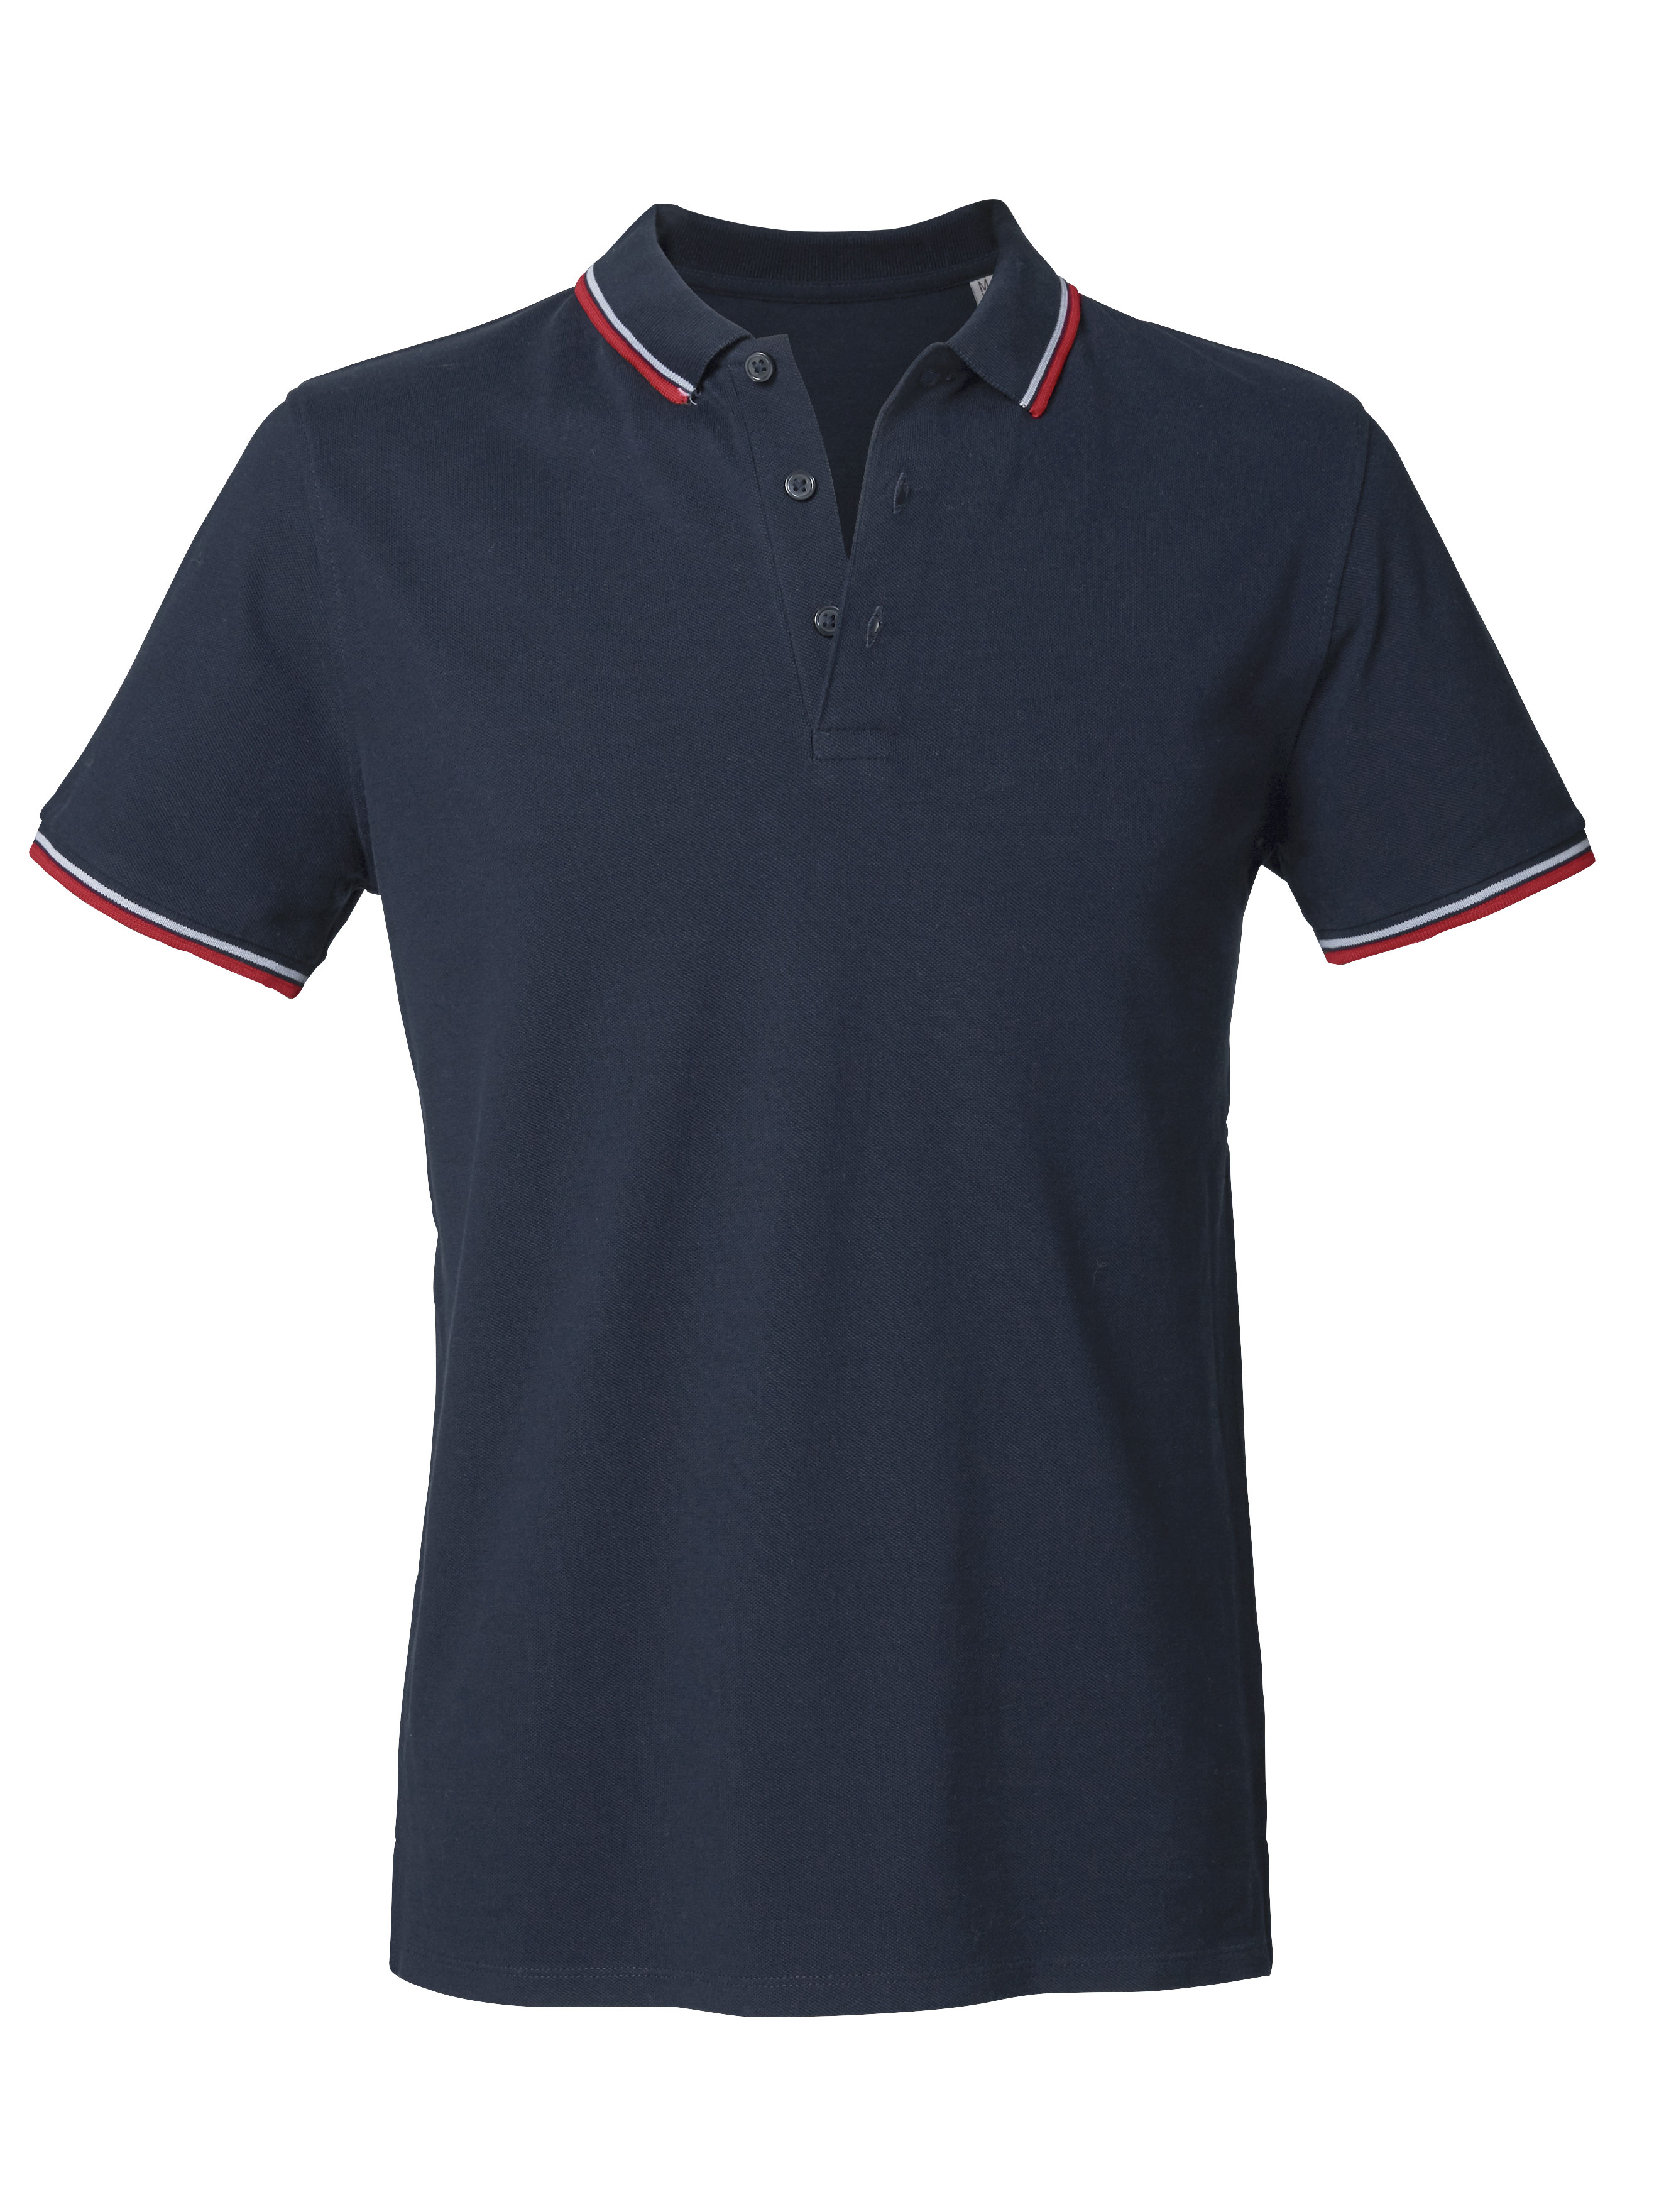 French Navy - White - Red